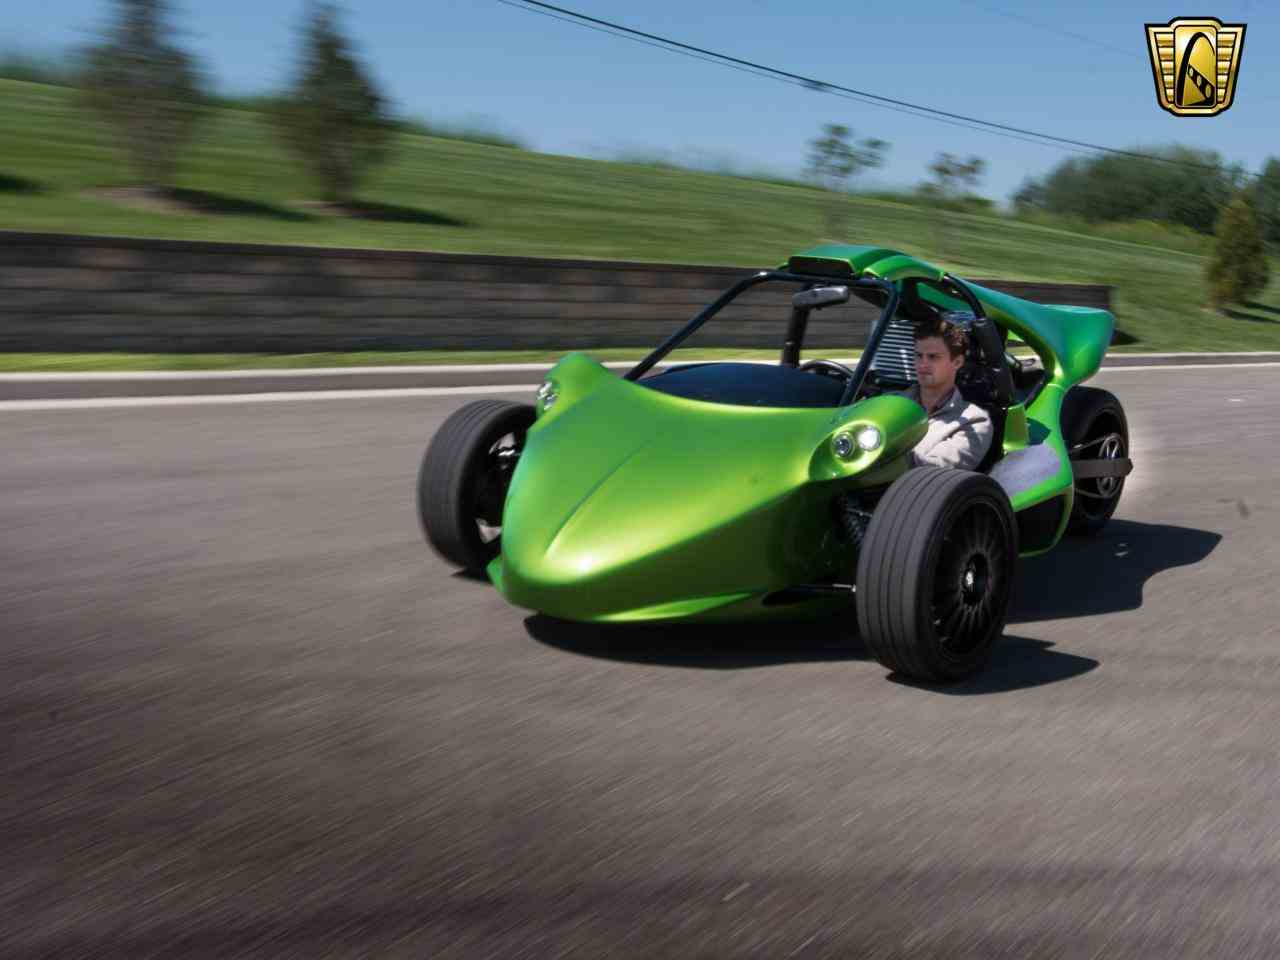 Large Picture of '08 T-Rex Replica located in Wisconsin - $44,595.00 Offered by Gateway Classic Cars - Milwaukee - L7NA